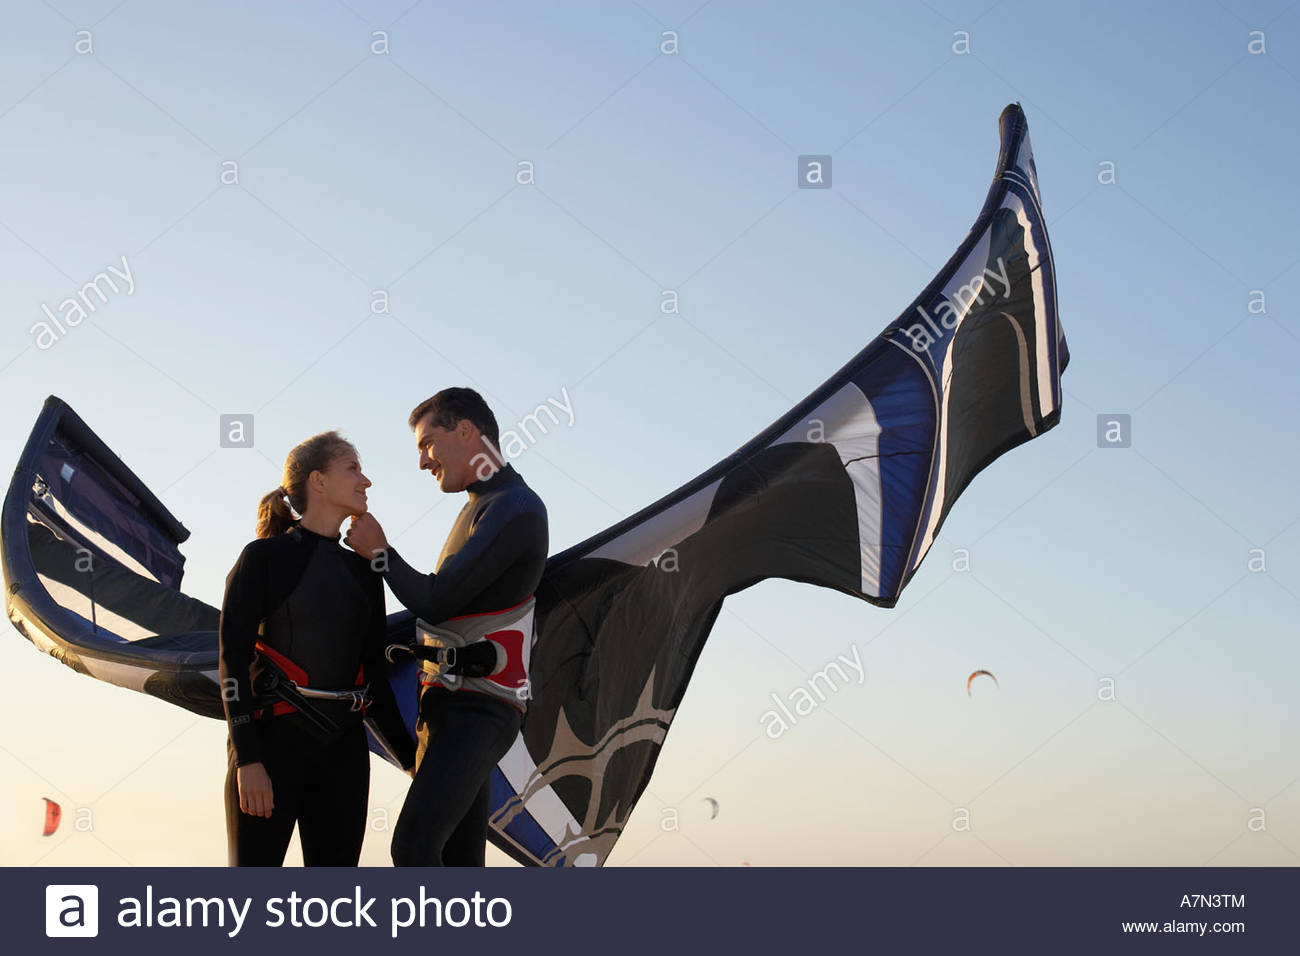 Young couple in wetsuits standing on beach with kiteboard at sunset smiling low angle view - Stock Image